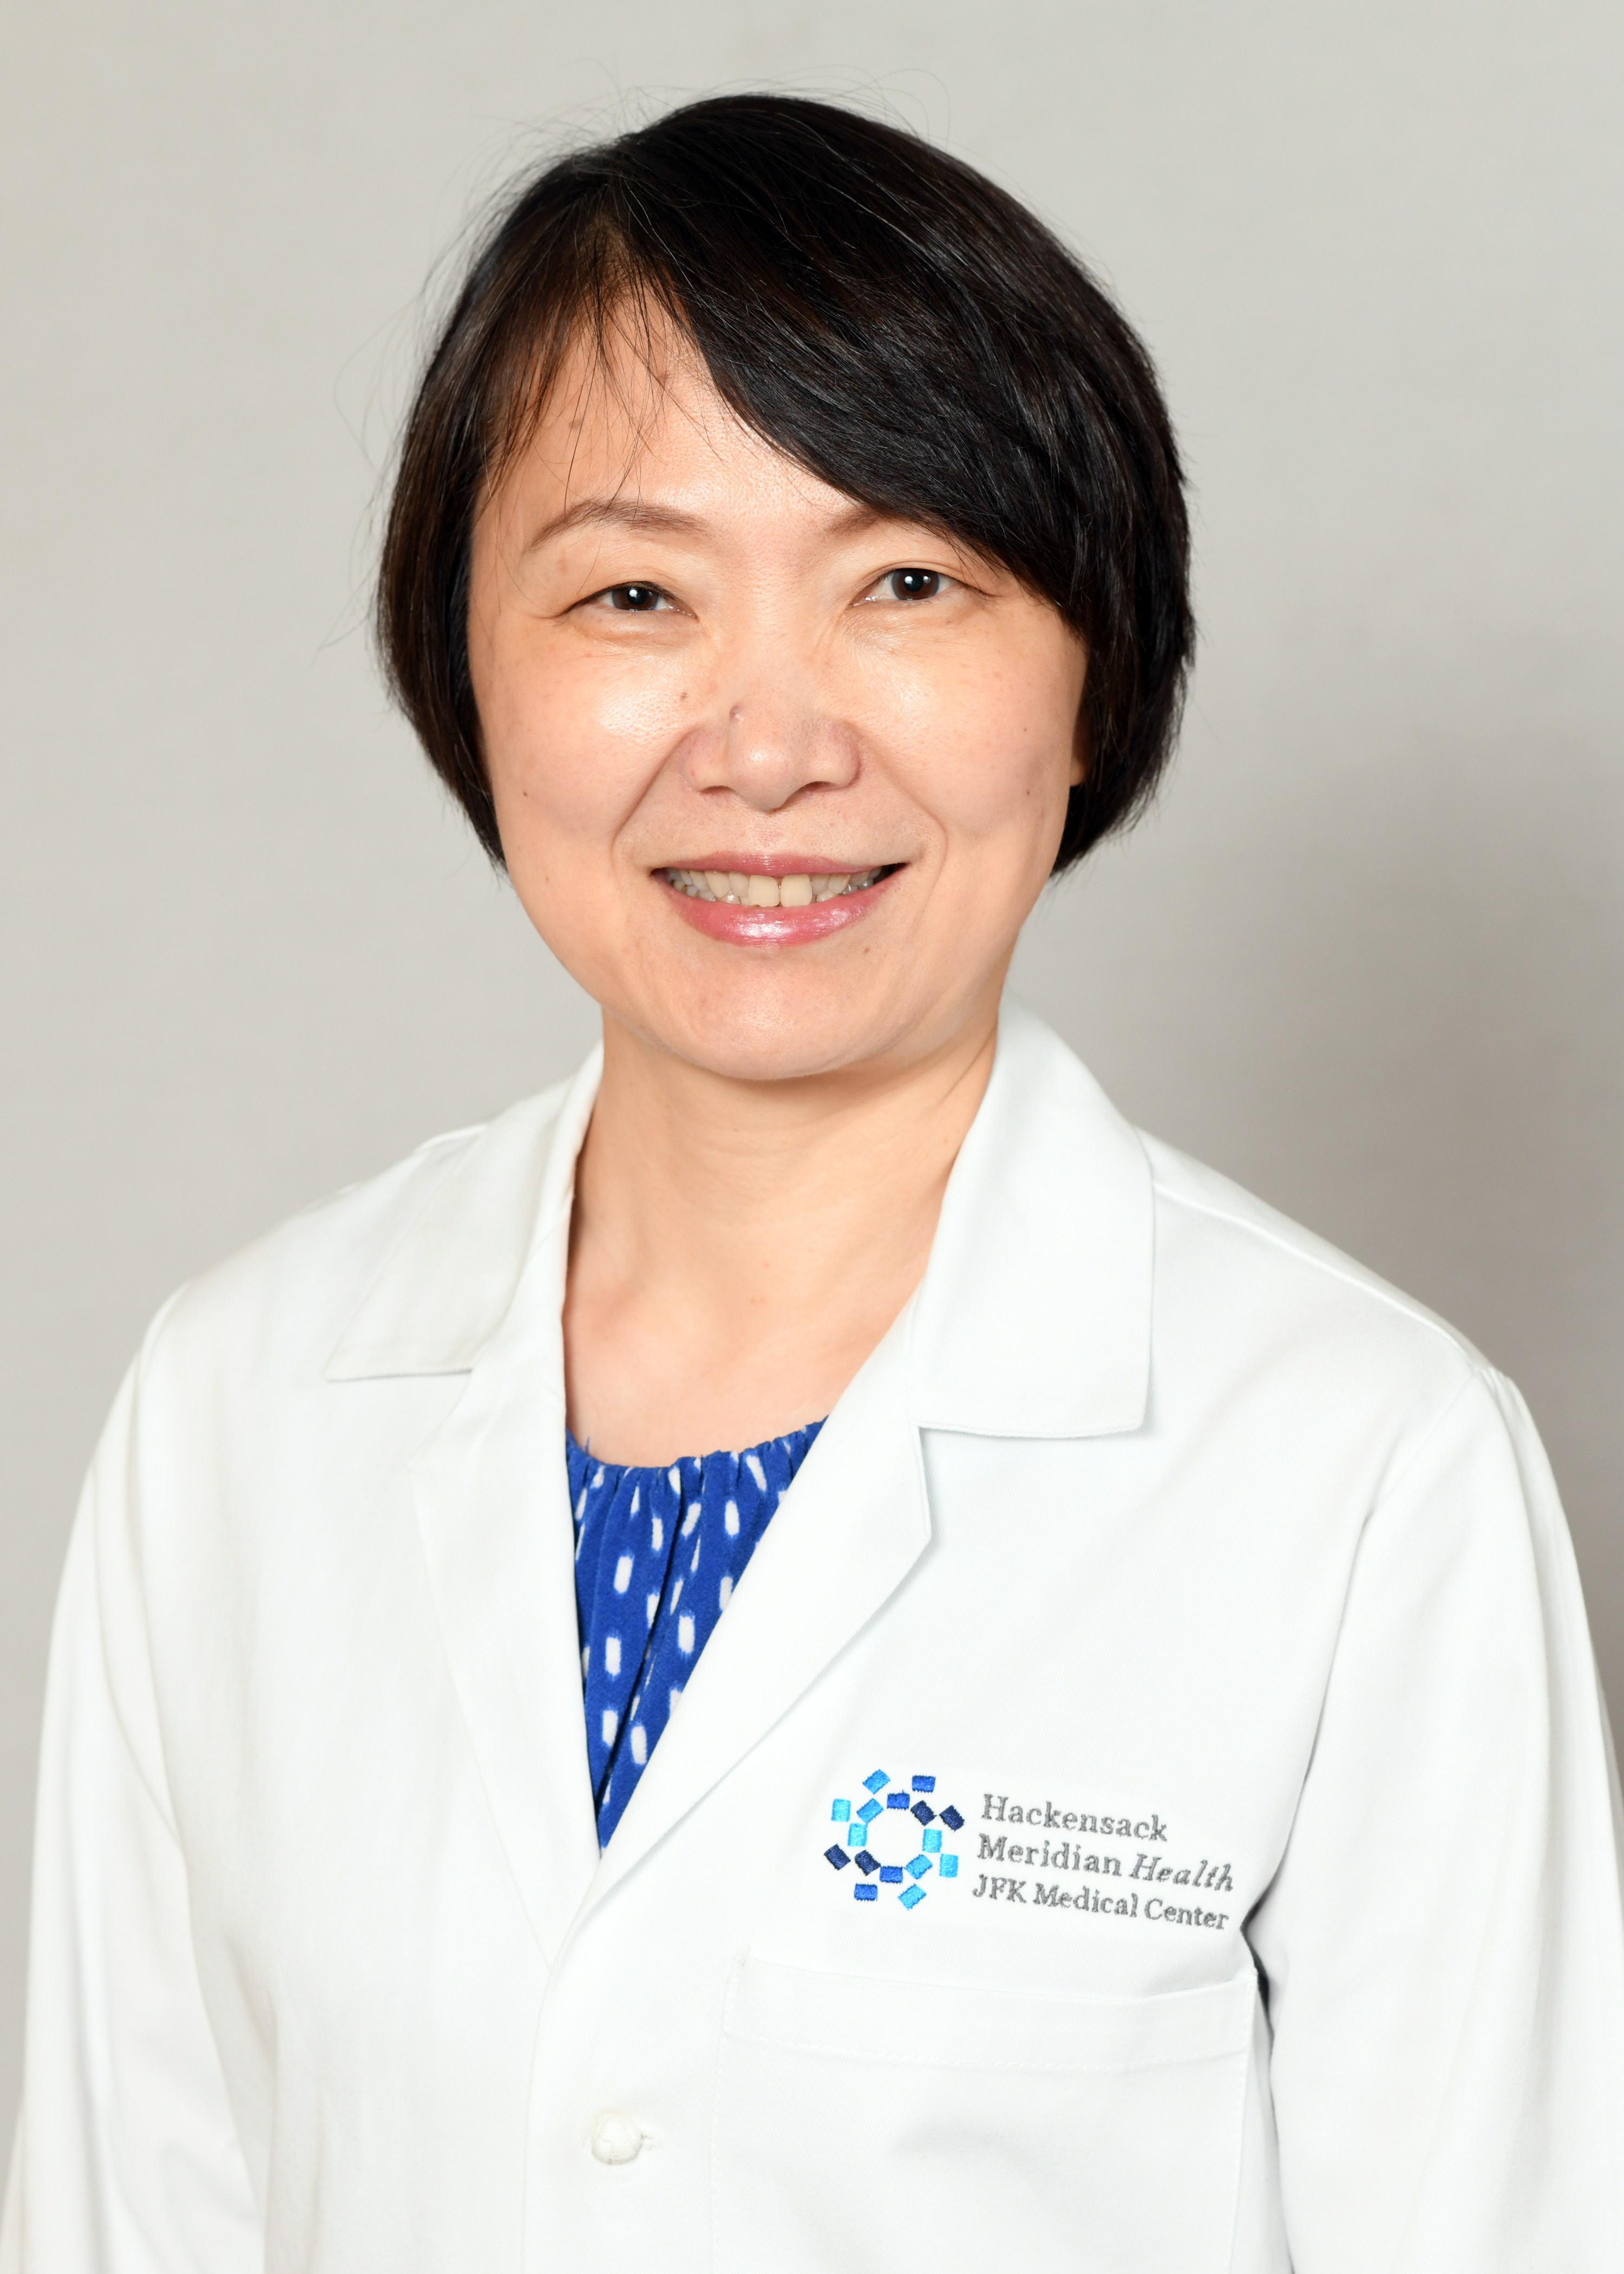 Image of Ming He, M.D.